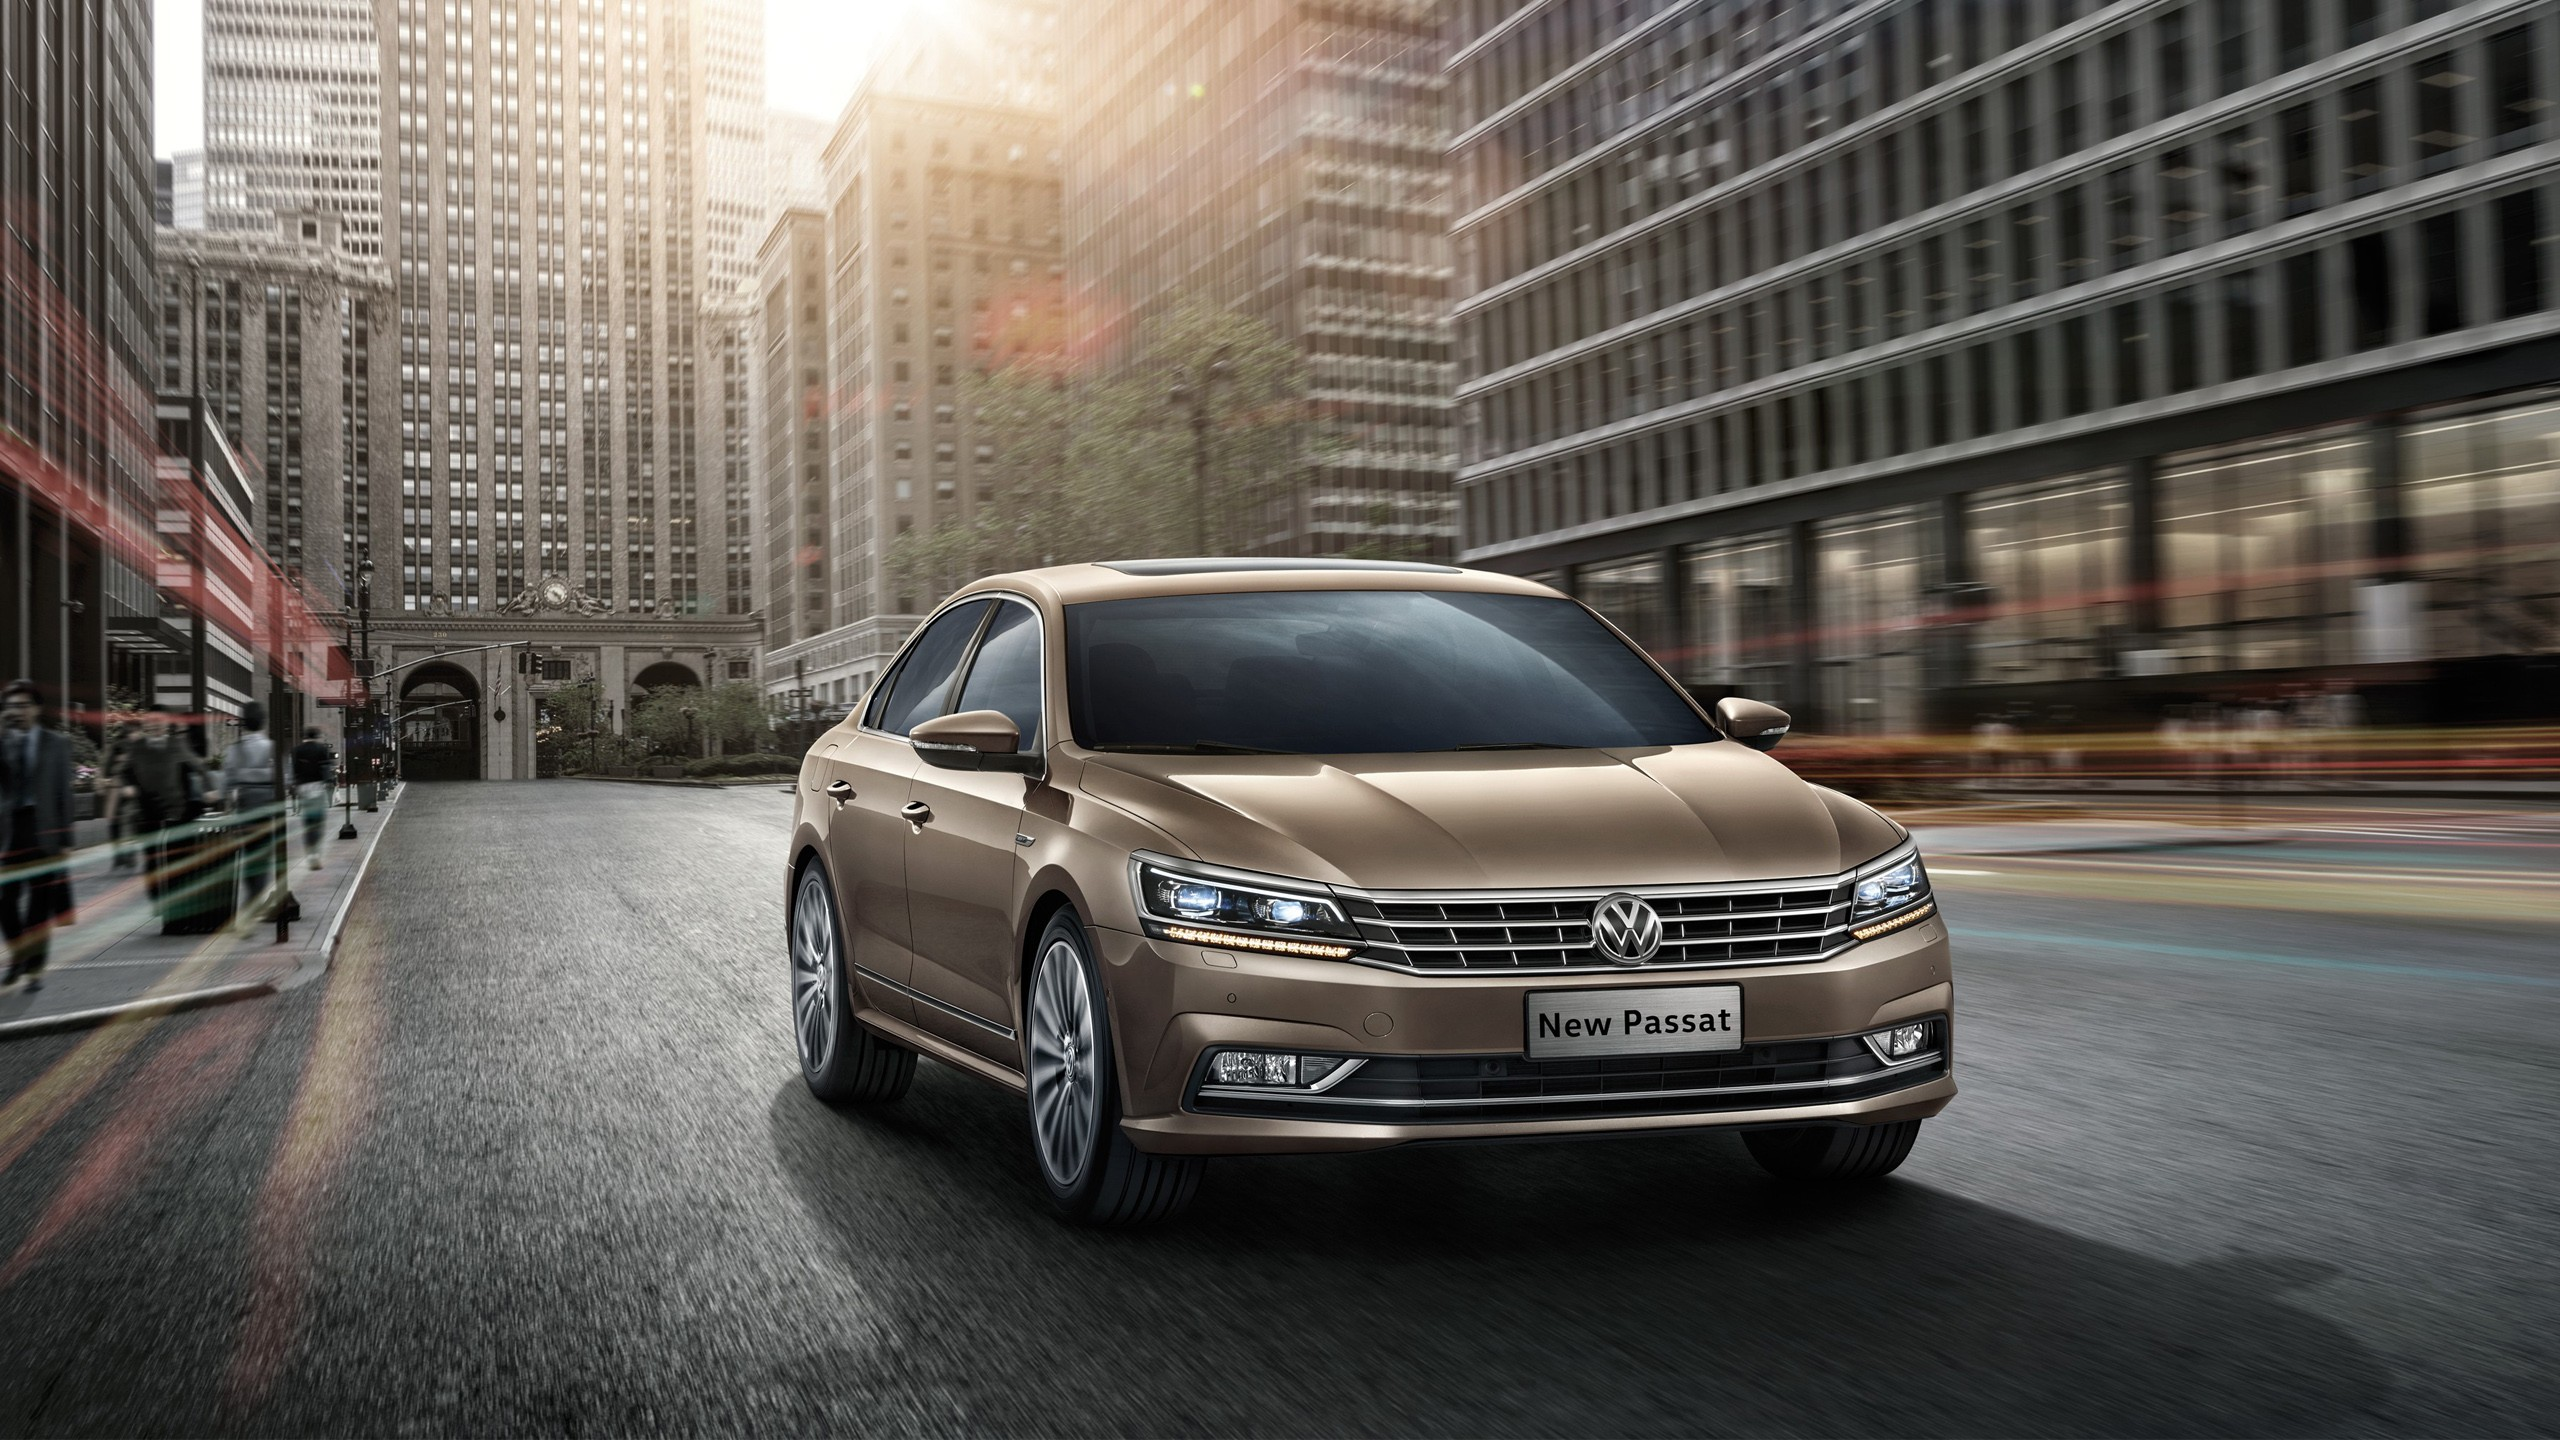 volkswagen passat cn spec  wallpaper hd car wallpapers id